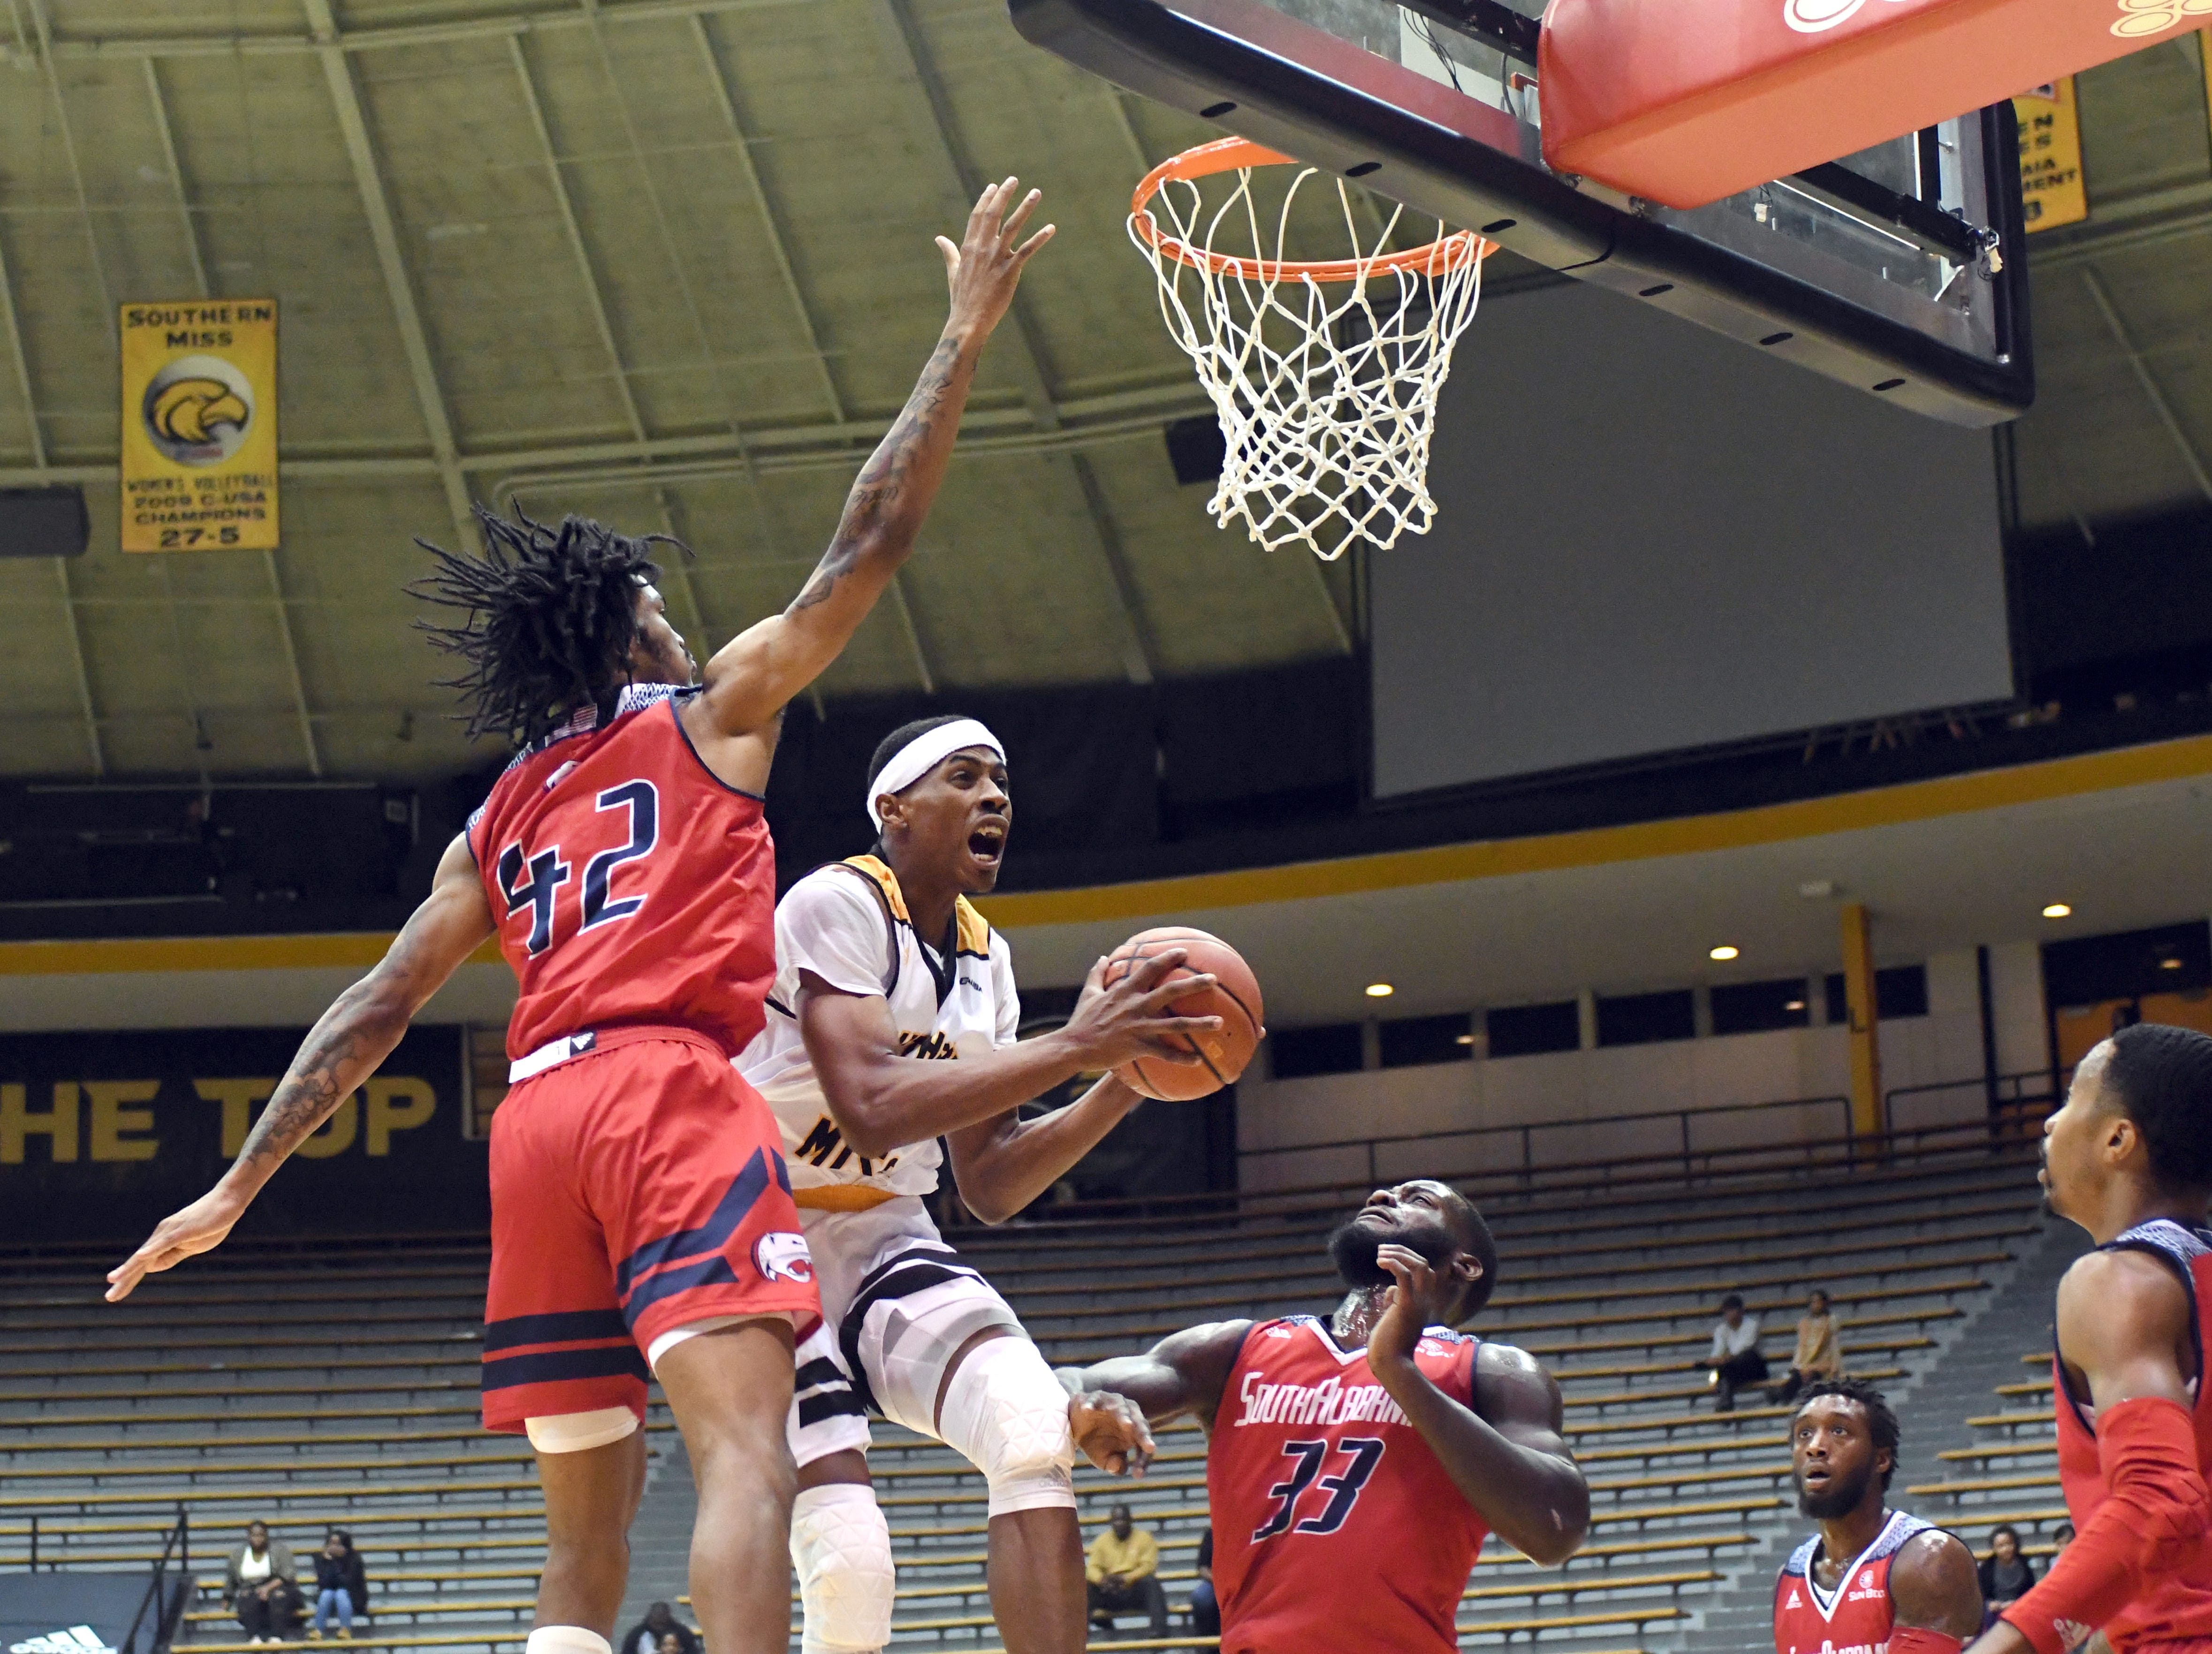 Southern Miss forward Leonard Harper-Baker shoots for the basket in a game against South Alabama in Reed Green Coliseum on Wednesday, November 28, 2018.